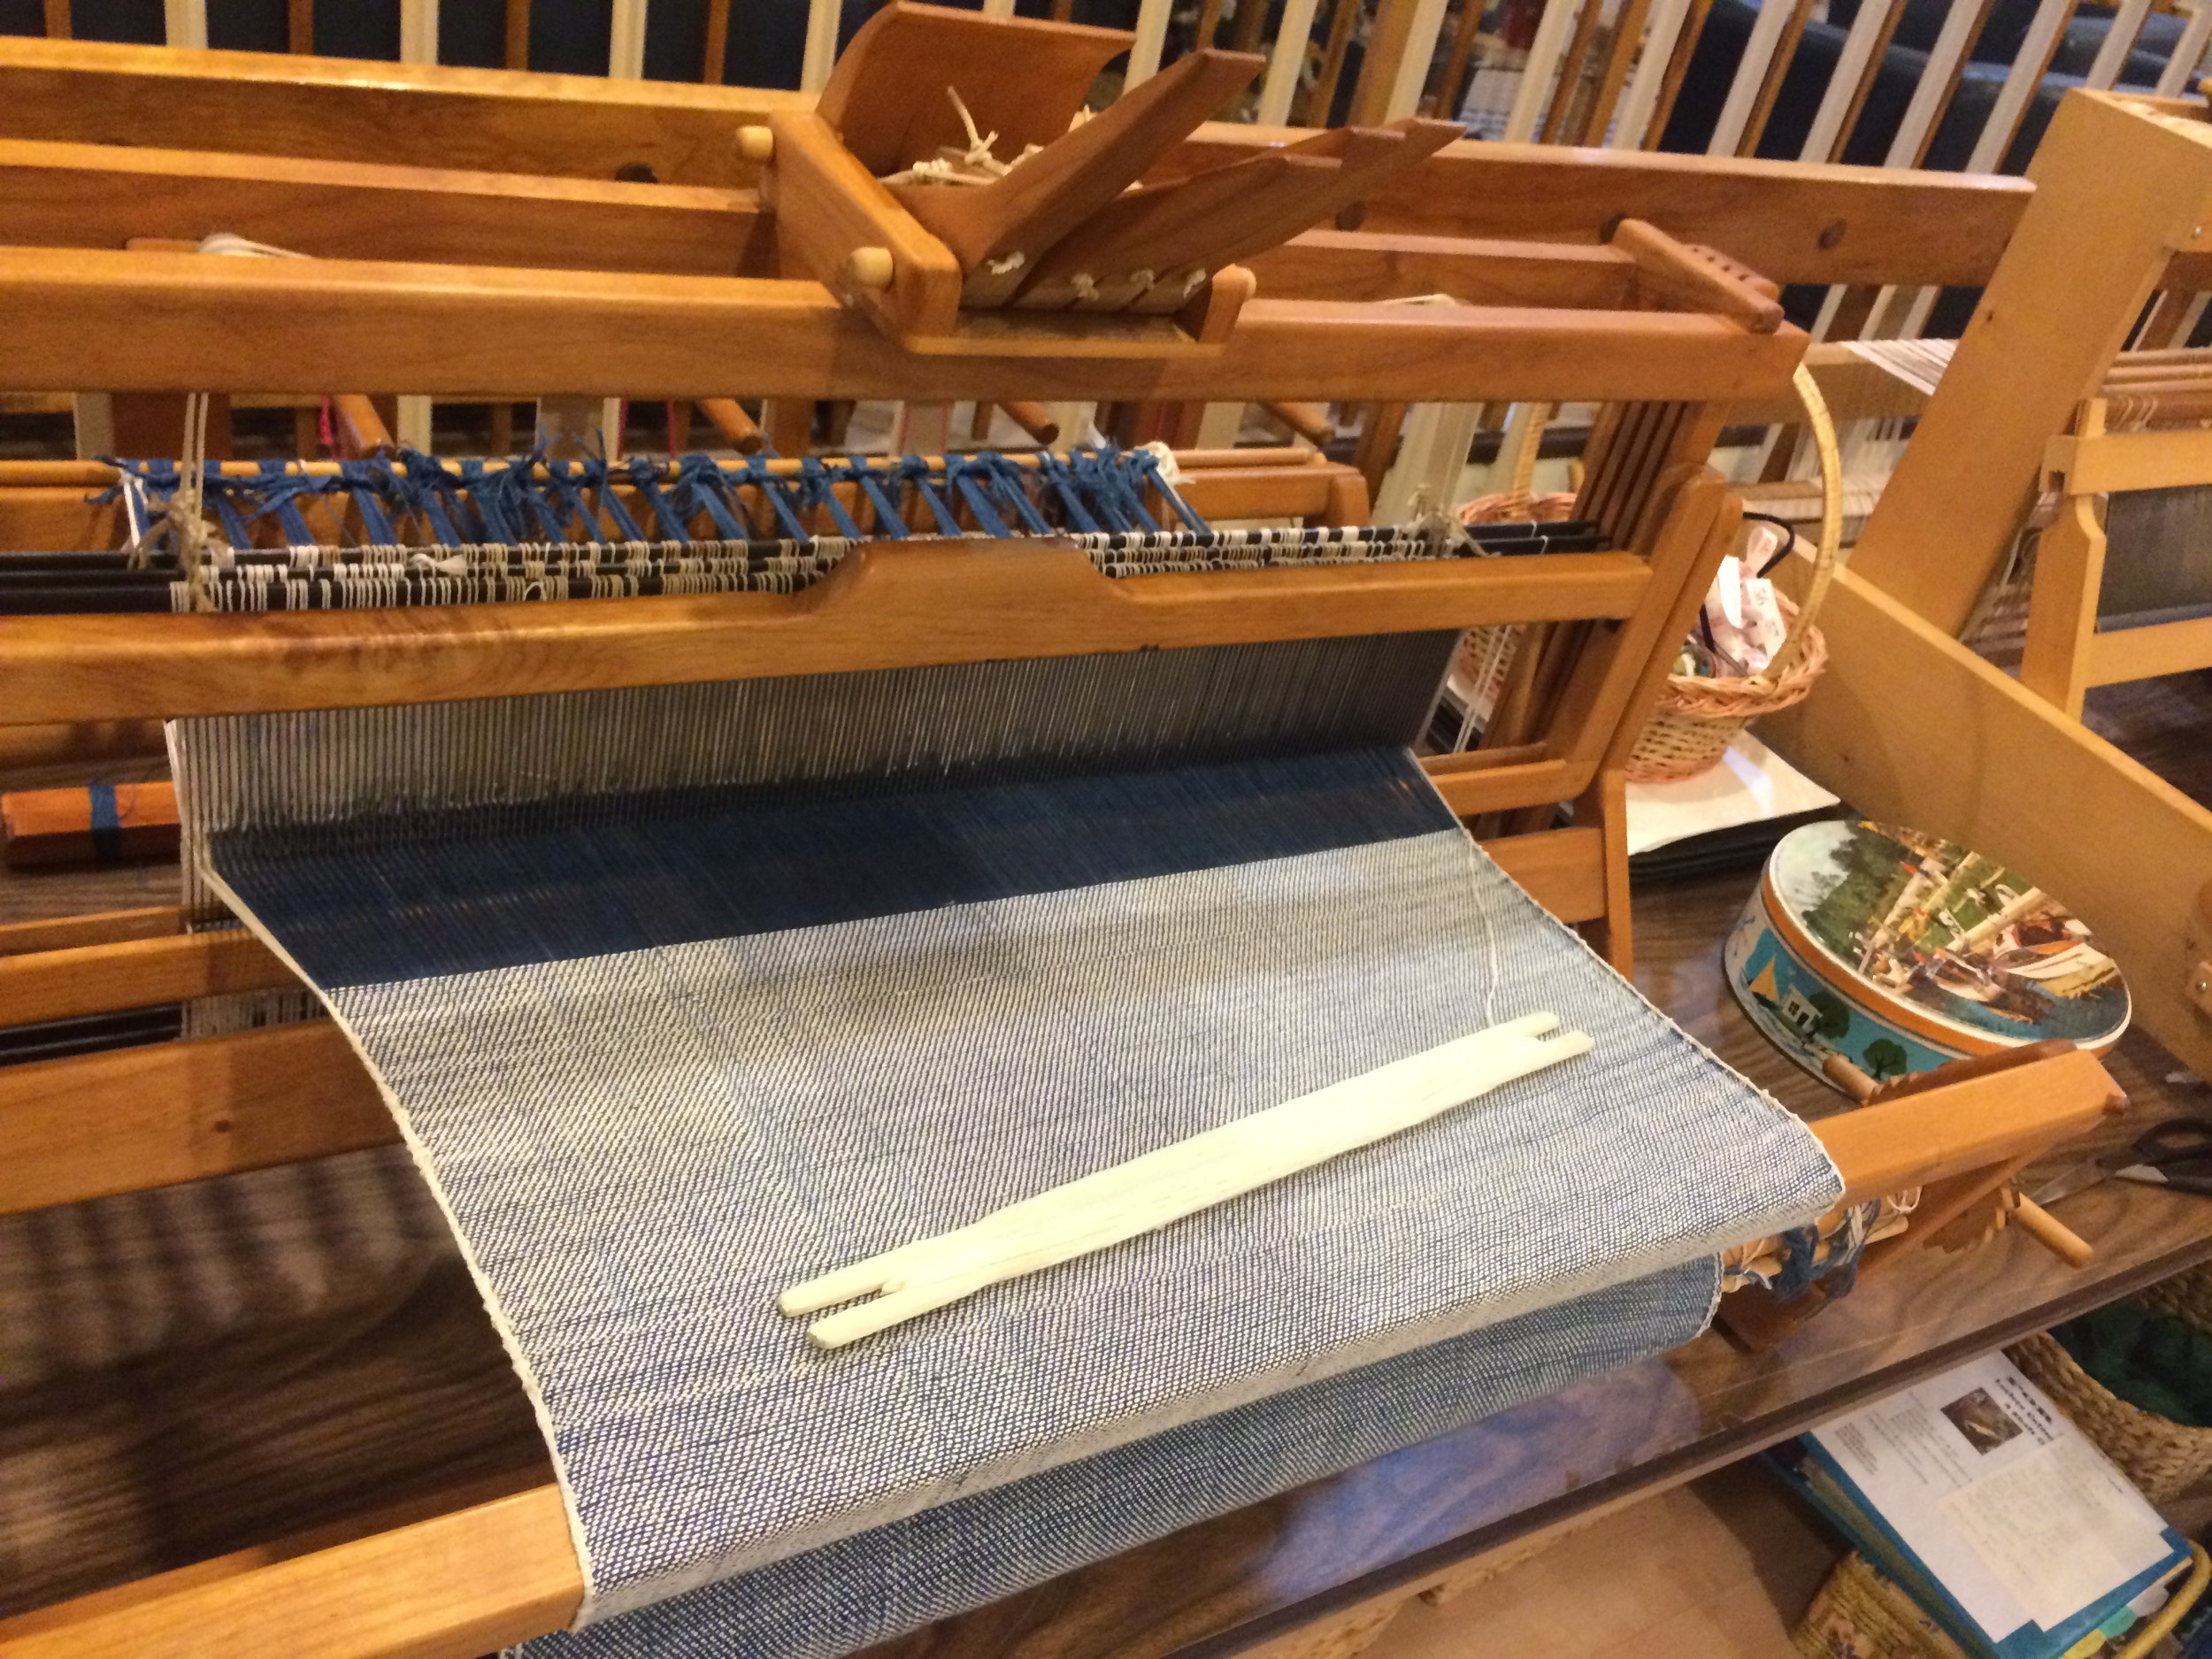 3x1 twill on a table loom.